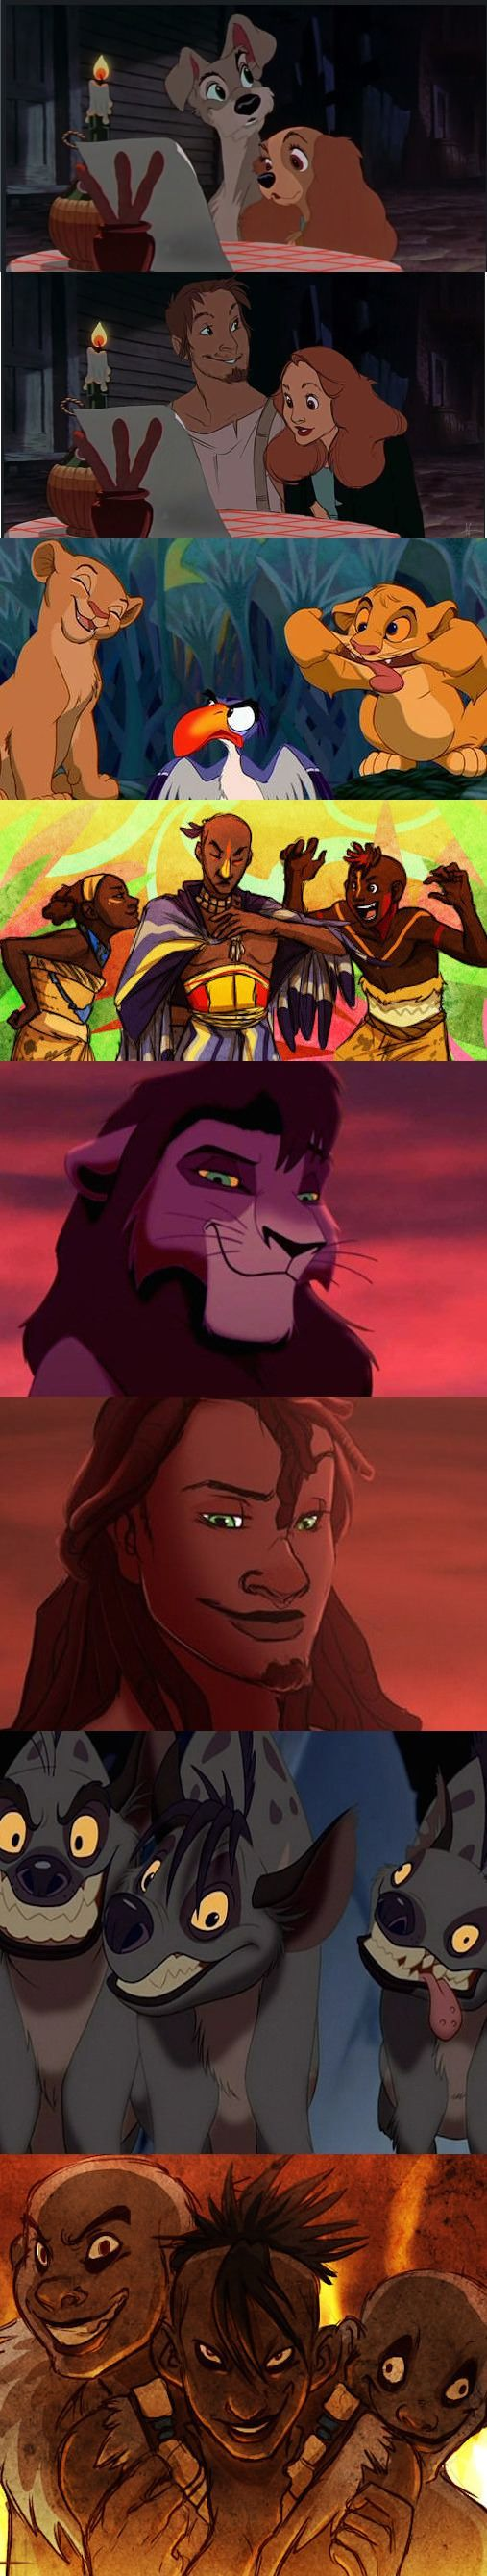 Disney animals into humans (Part 2)